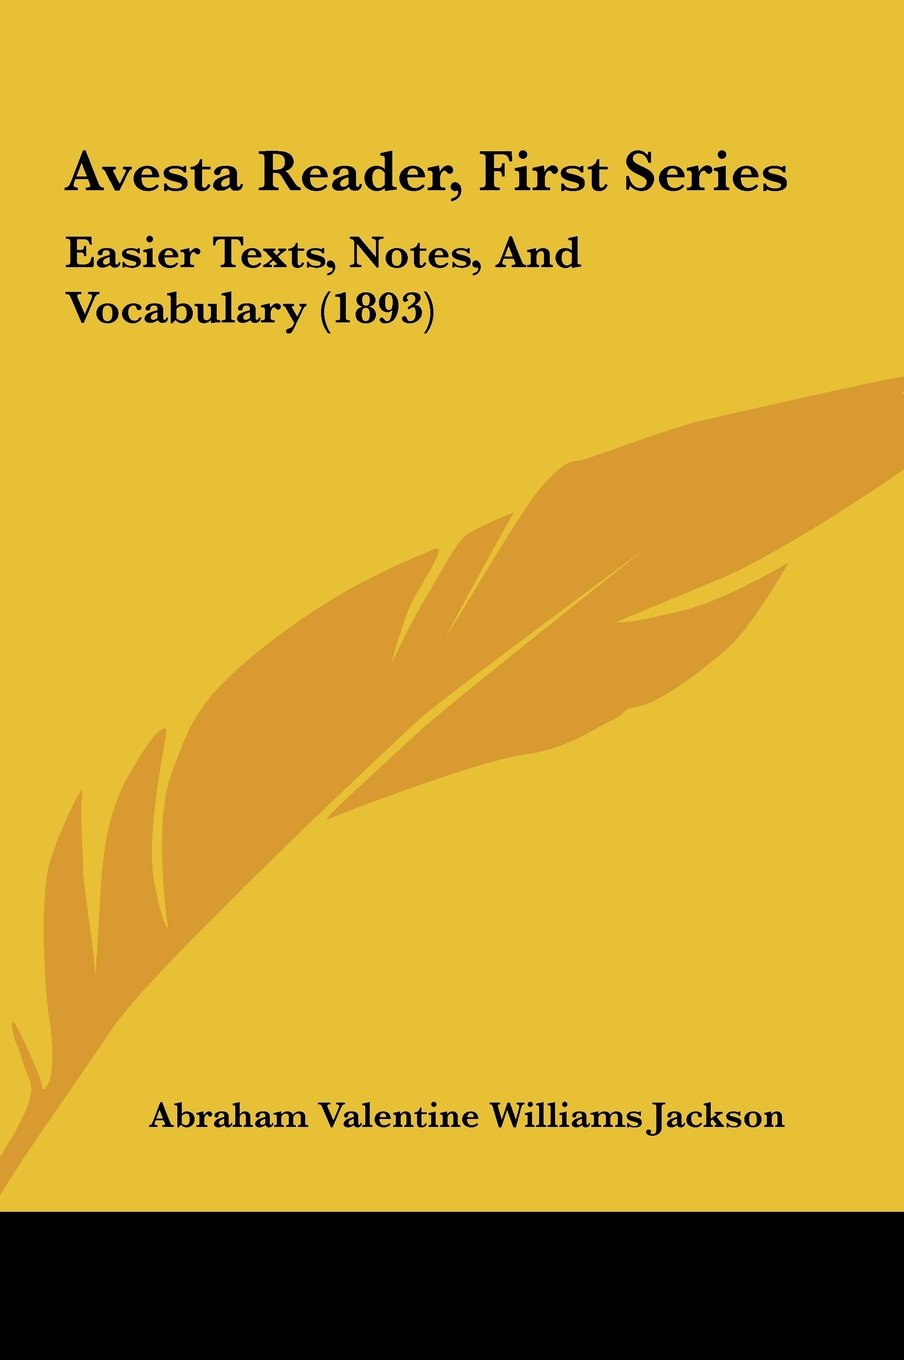 Avesta Reader, First Series: Easier Texts, Notes, And Vocabulary (1893) ebook